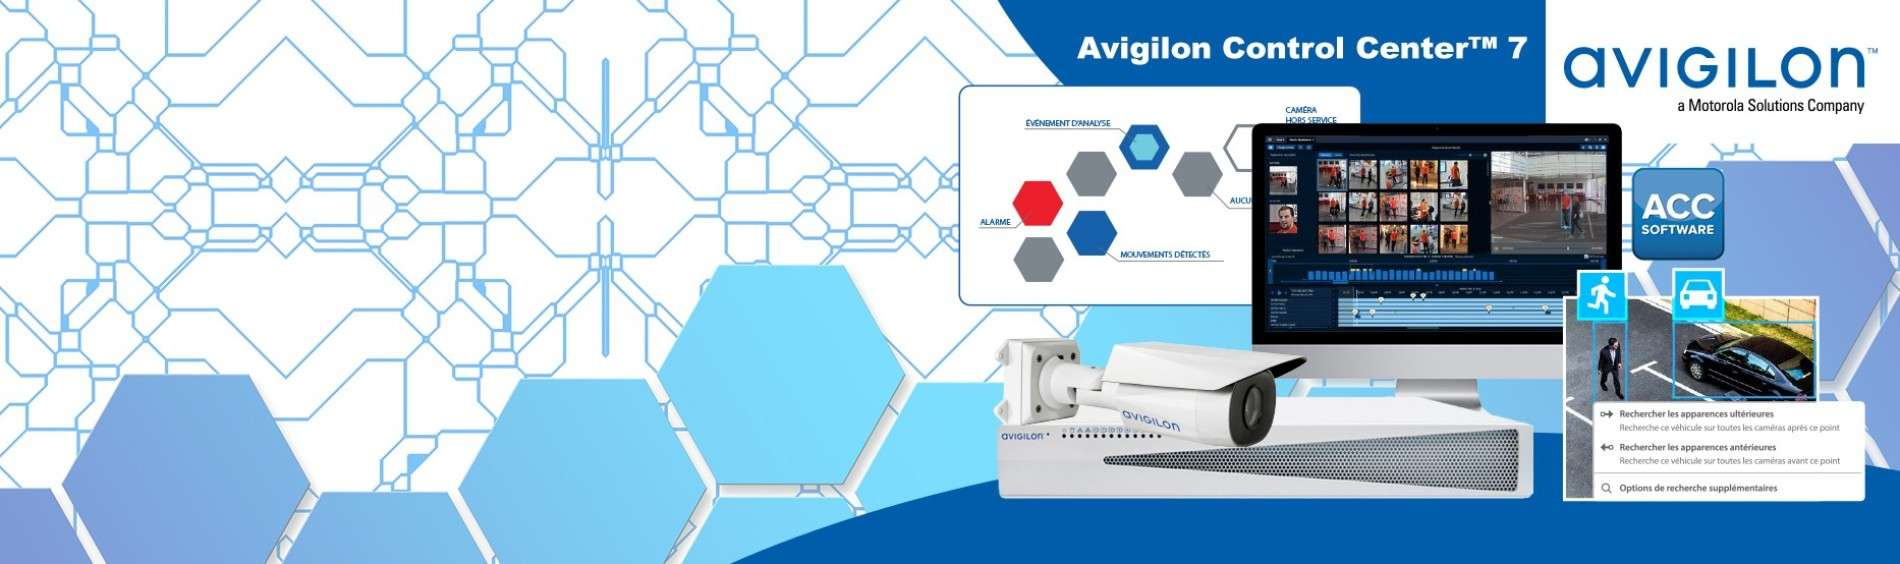 Logiciel Avigilon Control Center™ 7